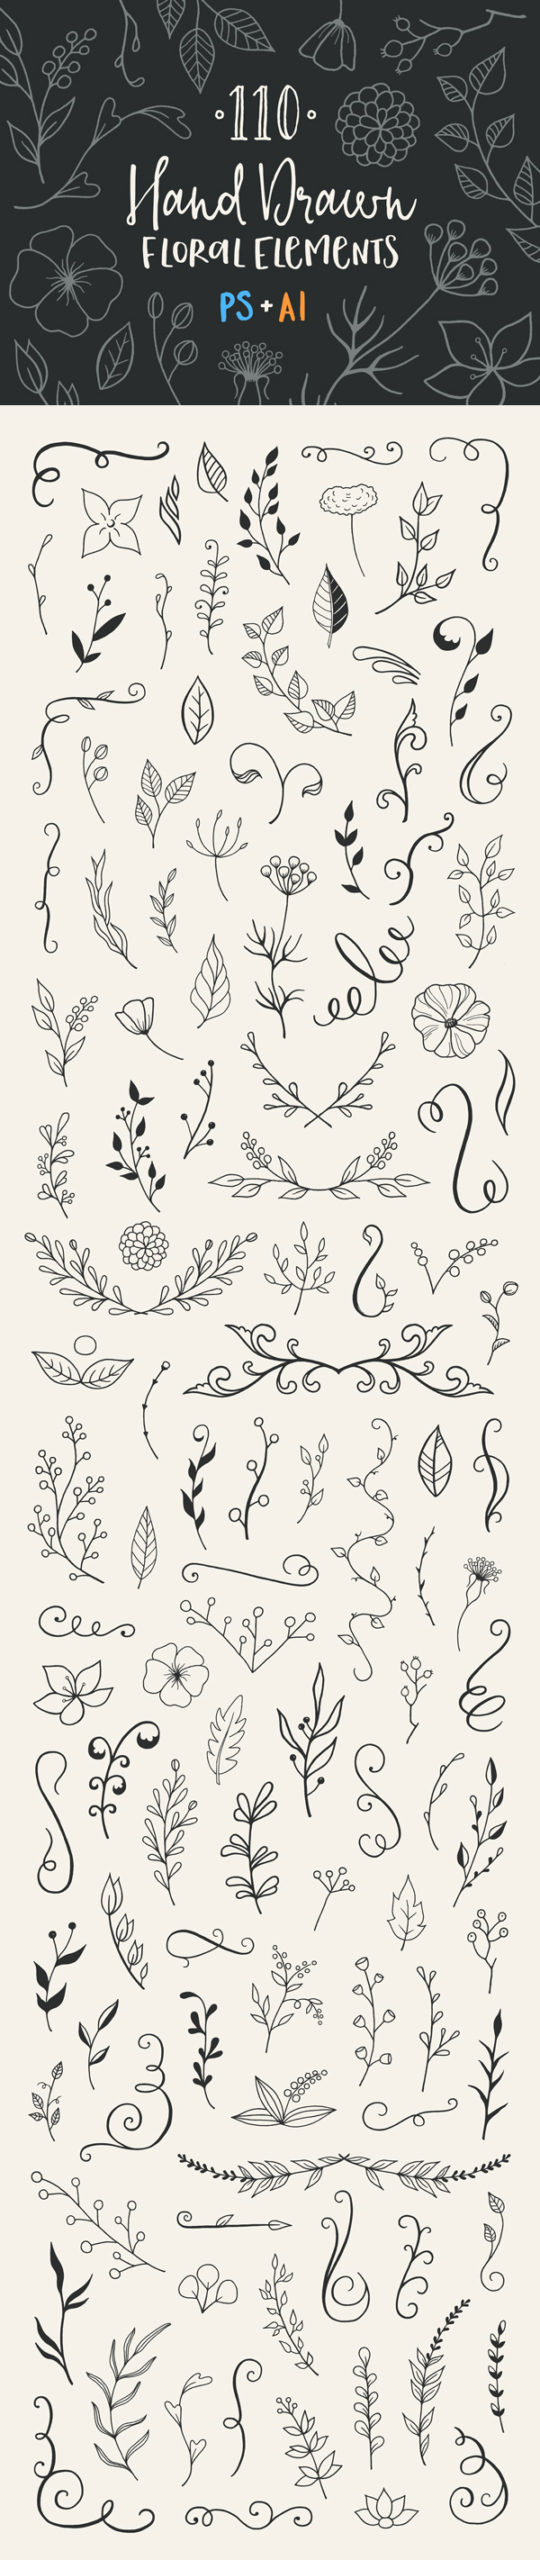 hand-drawn floral elements